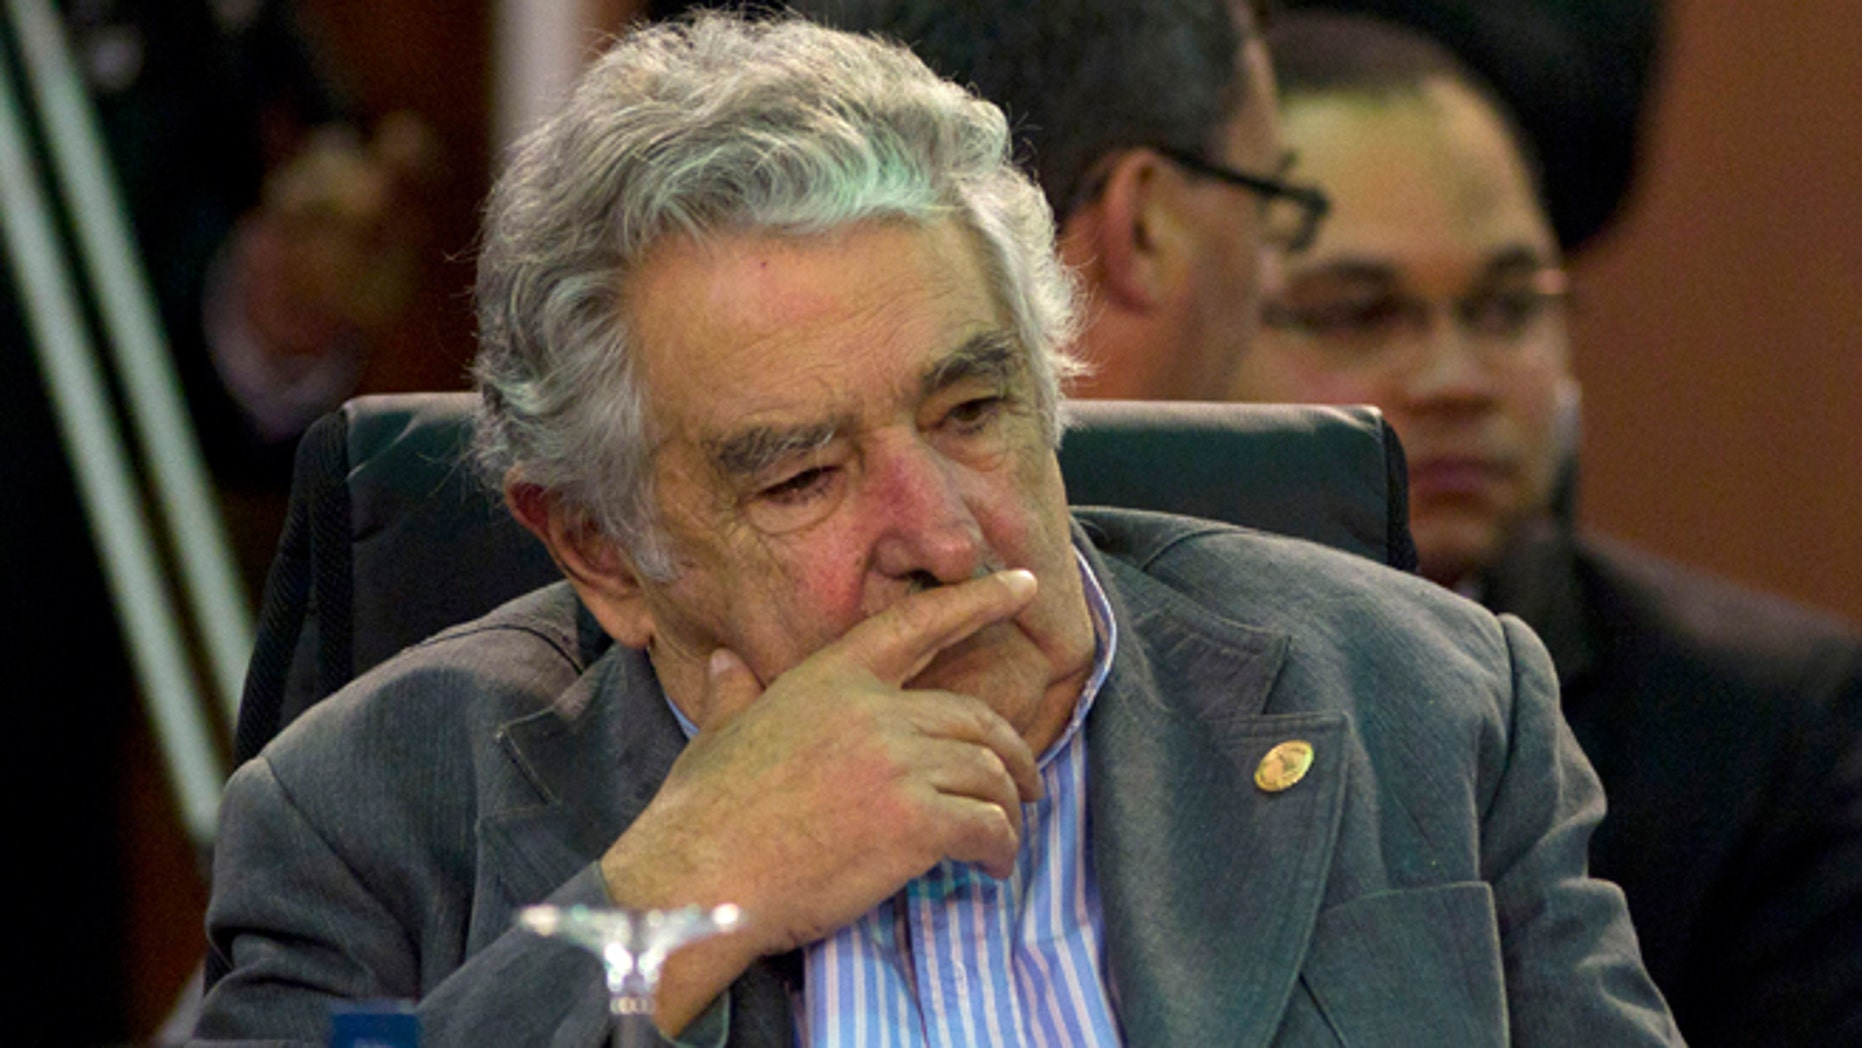 FILE -  In this Dec. 3, 2011 file photo, Uruguay's President Jose Mujica attends a working session of the Community of Latin American and Caribbean States, CELAC, summit in Caracas, Venezuela.  Uruguay's president has canceled his trip Thursday, Nov. 15, 2012, to the Ibero-American Summit in Spain, saying doctors have ordered bed rest after a painful blood clot was found in his lower right leg. The 77-year-old Jose Mujica says the clot was found with a sonogram and that he's following doctors' orders to relax at home for two or three days while taking anti-coagulant medicine. (AP Photo/Ariana Cubillos, File)